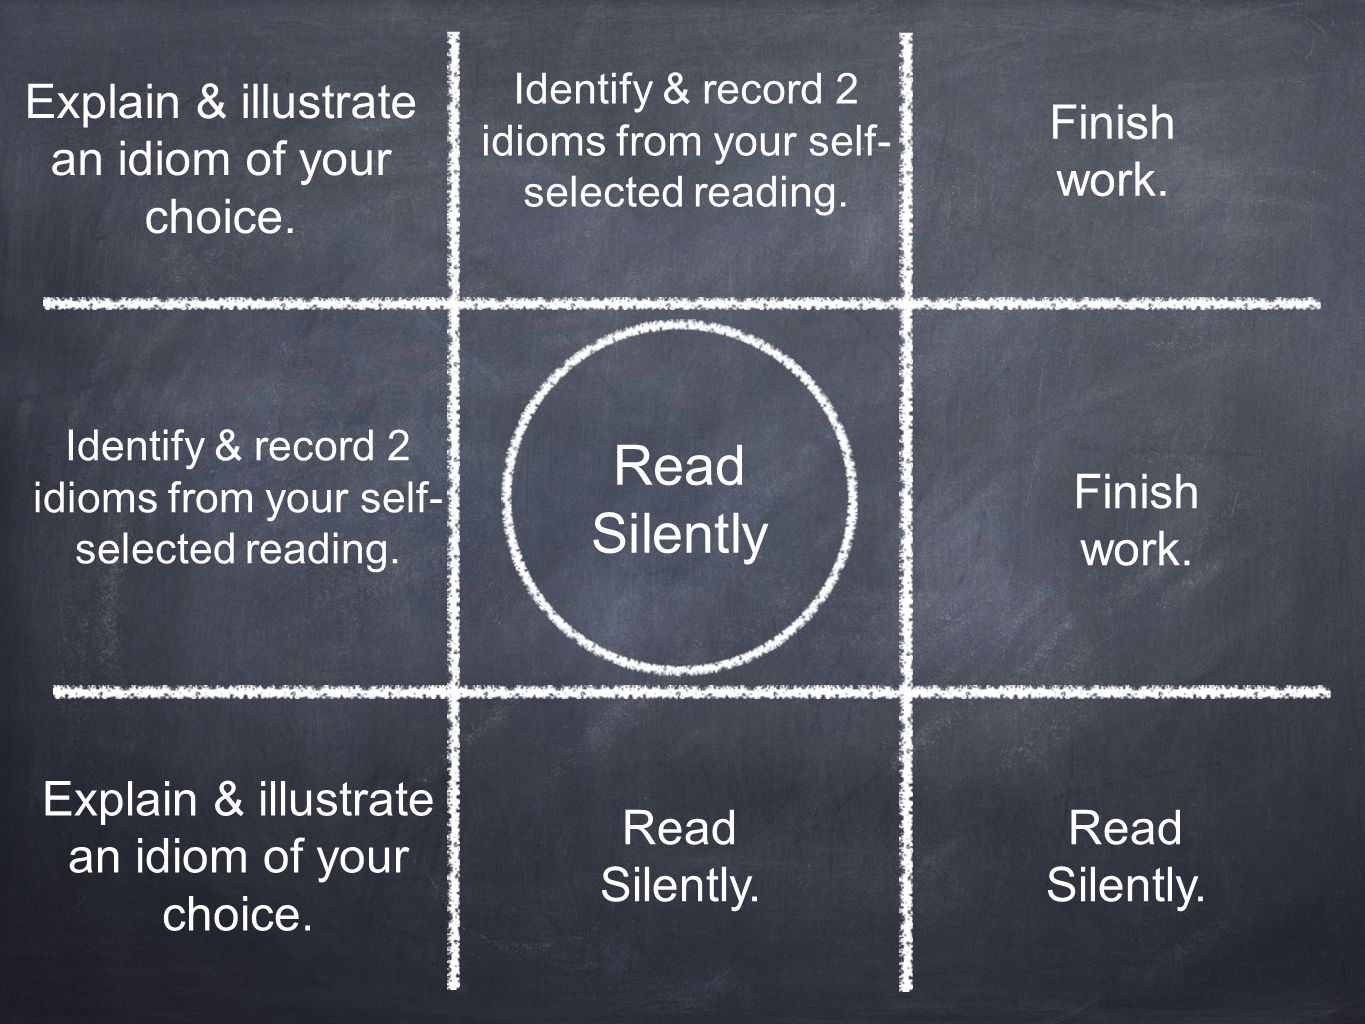 Read Silently Read Silently. Explain & illustrate an idiom of your choice. Read Silently. Finish work. Identify & record 2 idioms from your self- sele